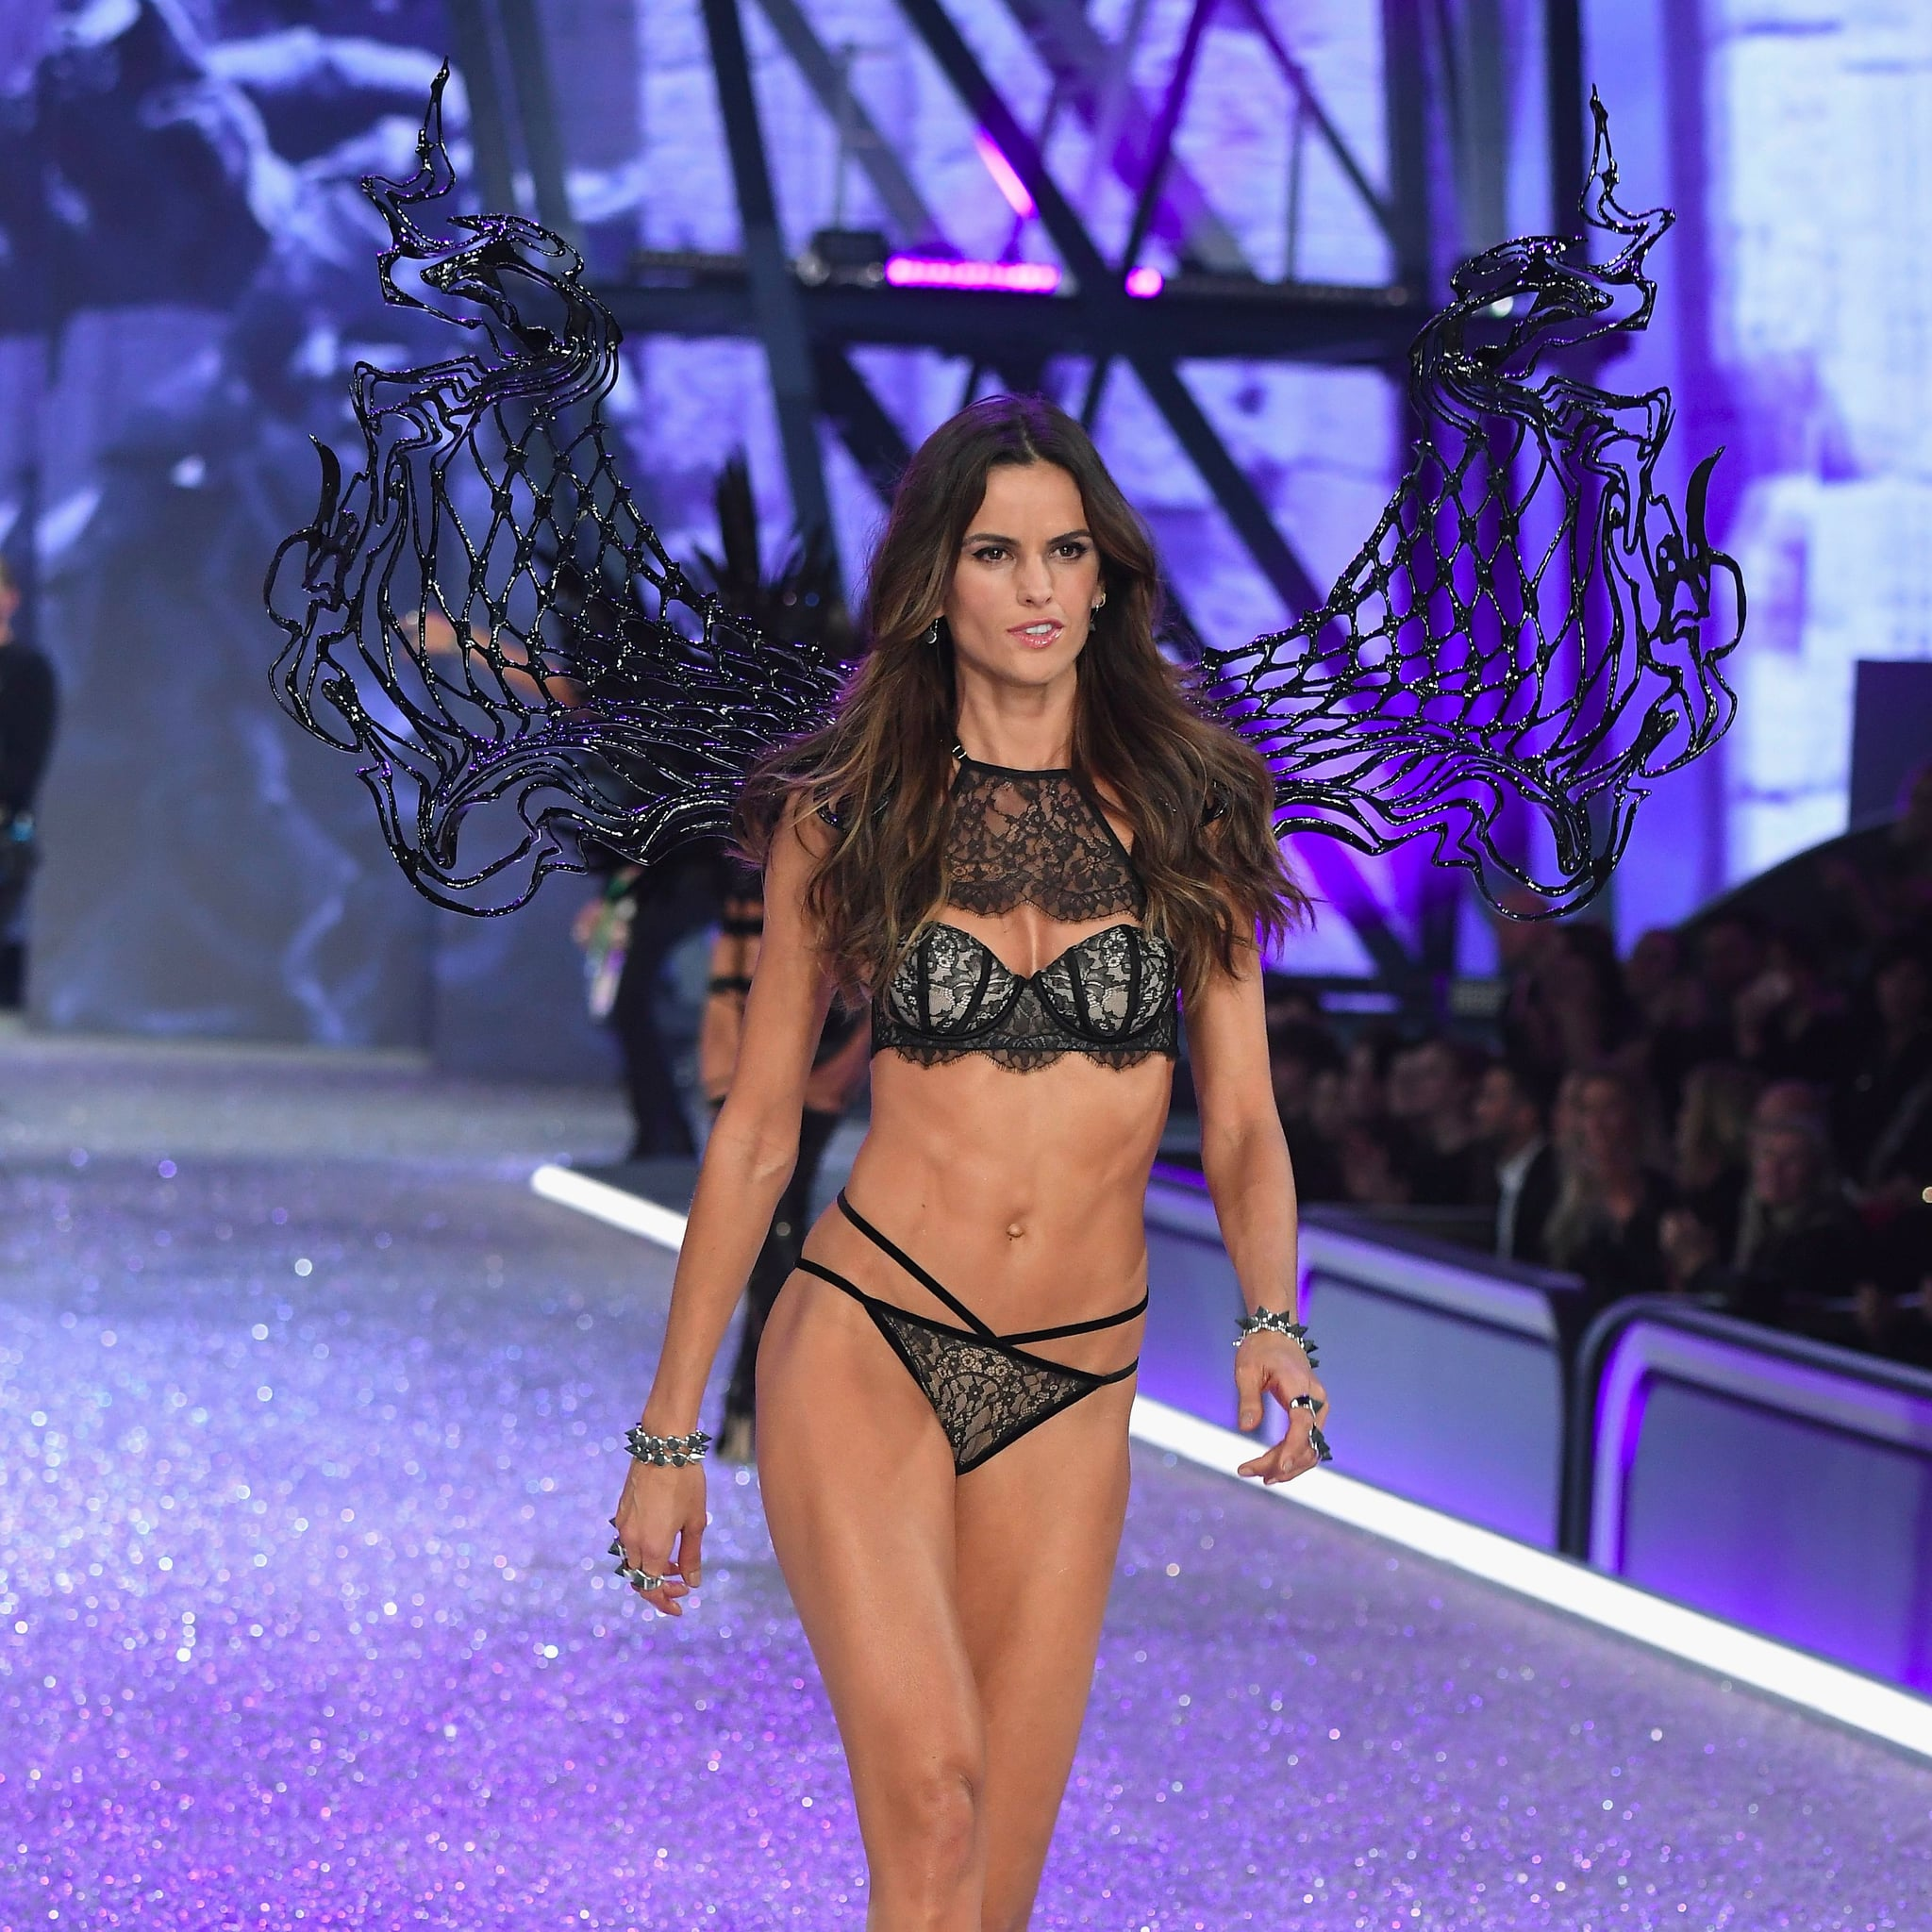 Pictures Izabel Goulart nudes (63 foto and video), Ass, Bikini, Boobs, braless 2019